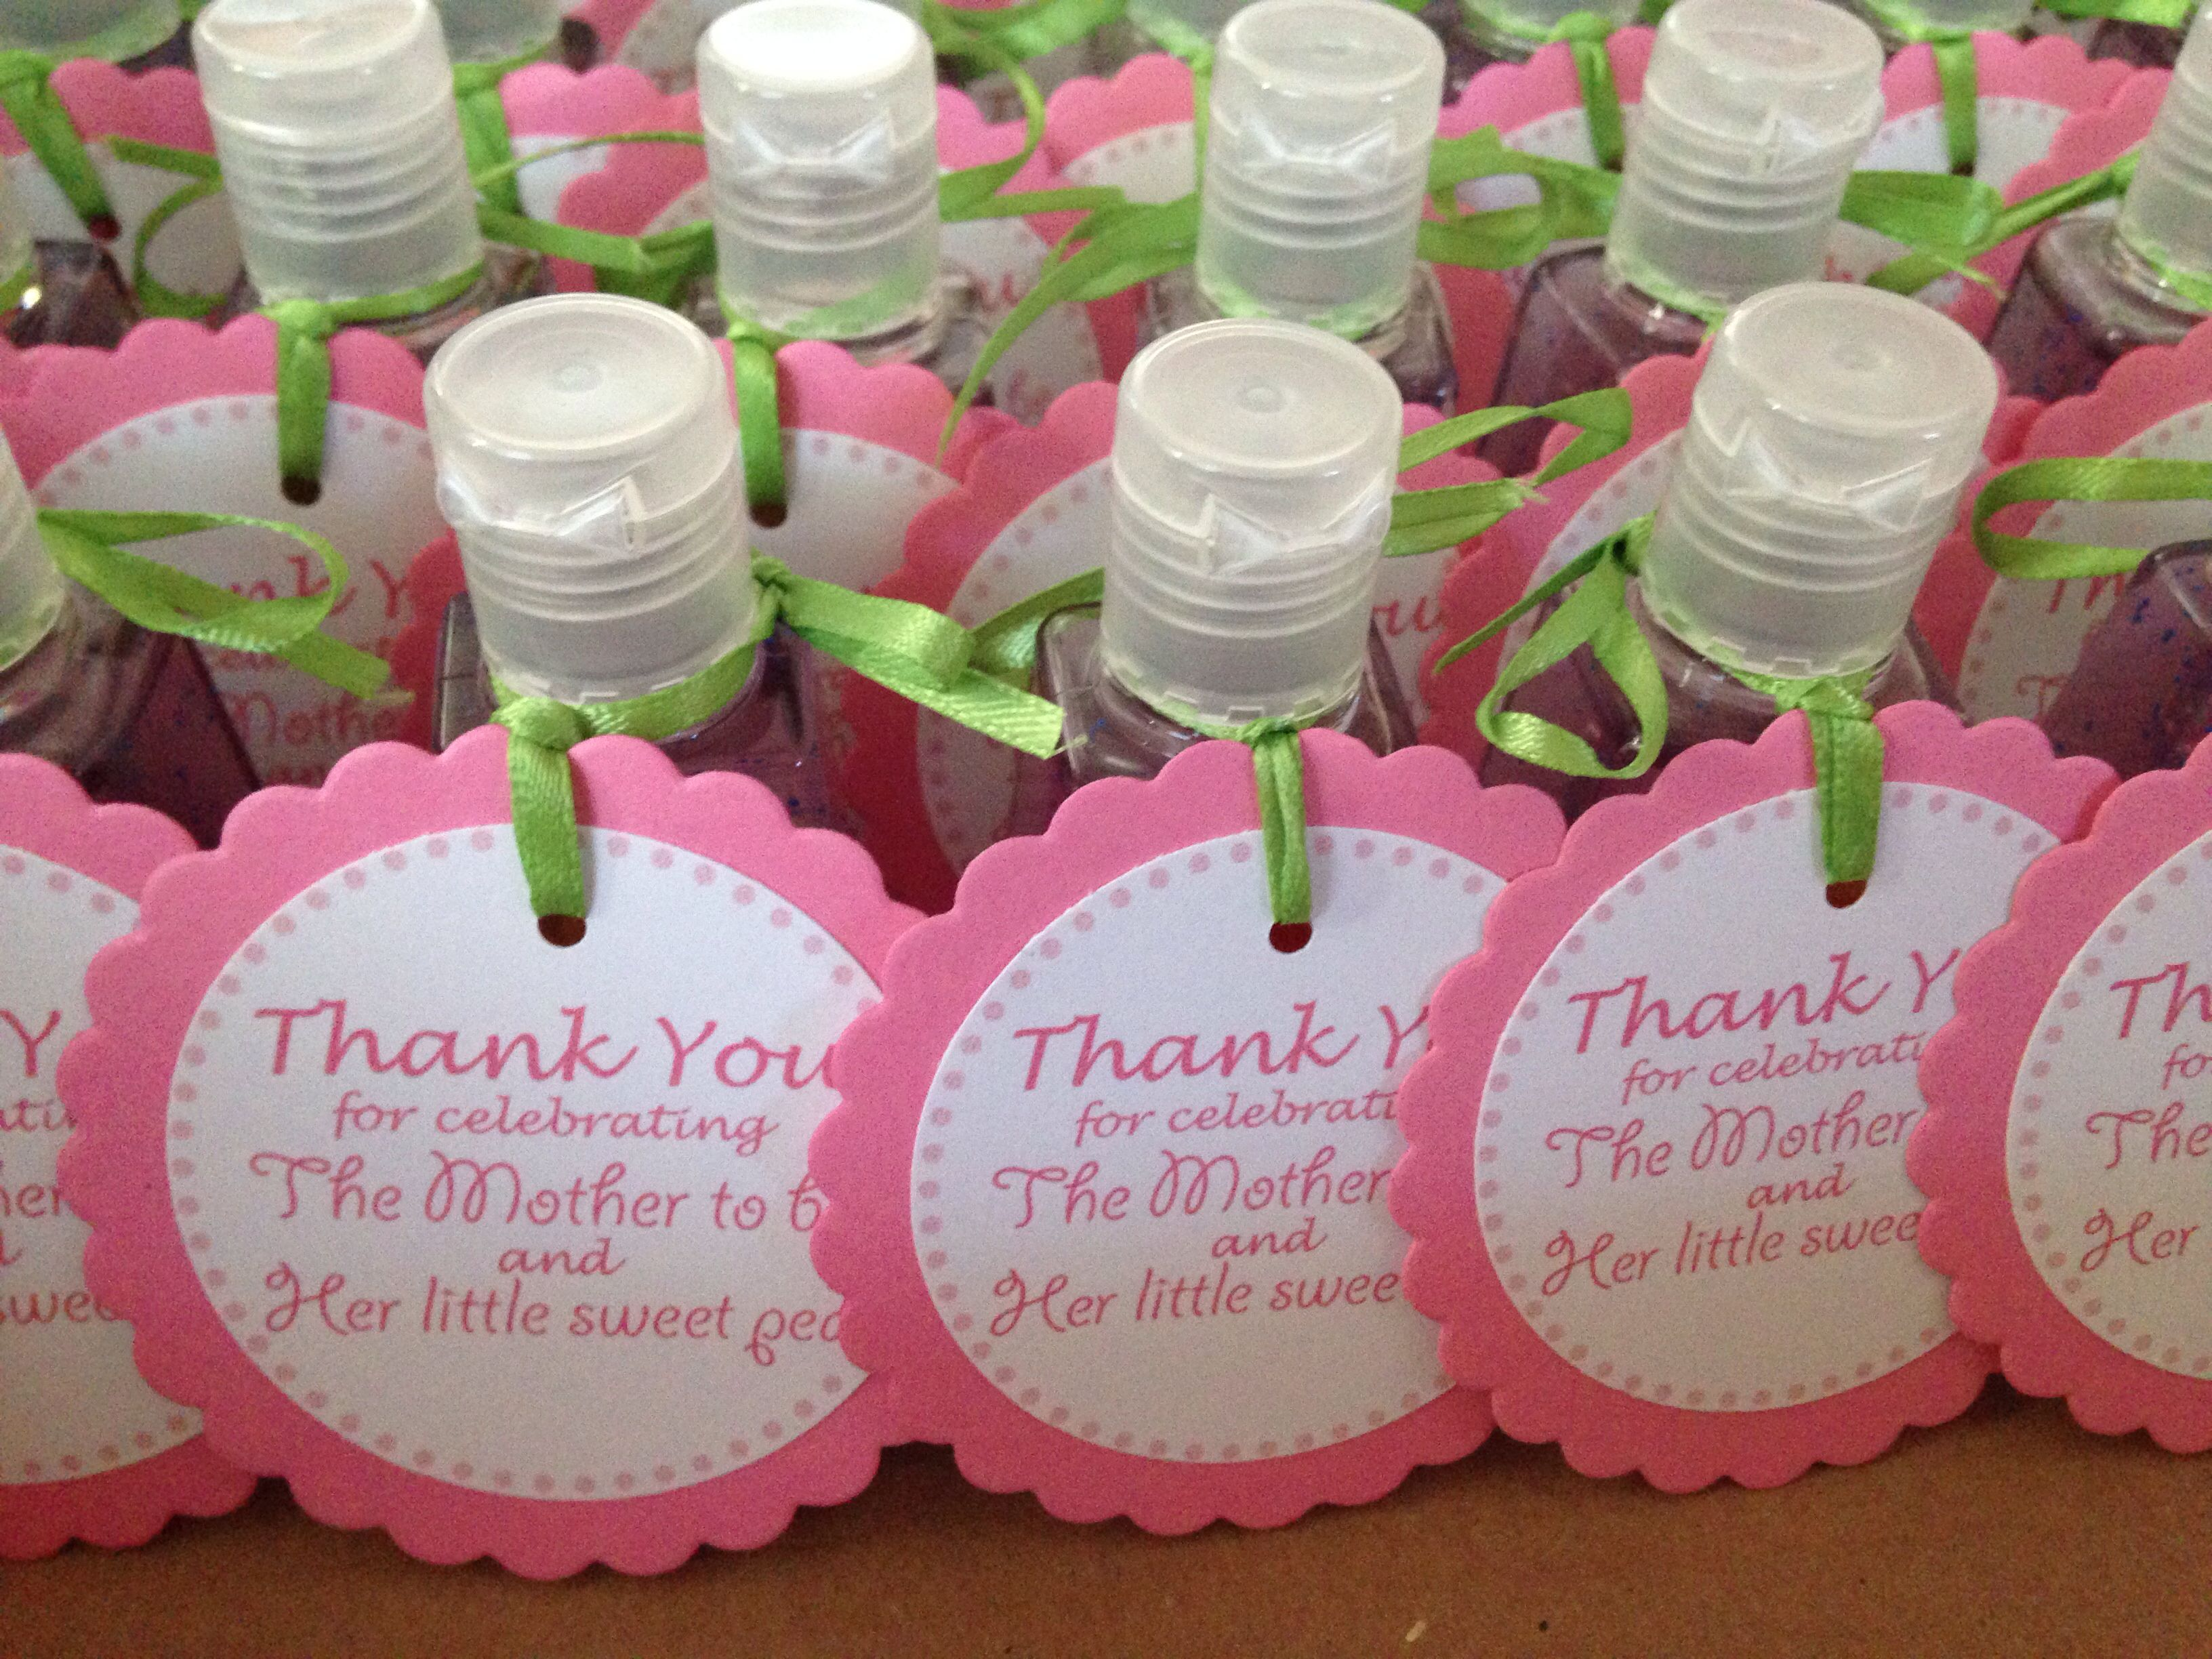 Wedding Take Home Gifts: Baby Girl Shower Favors.Sweet Pea Sanitizers From Bath